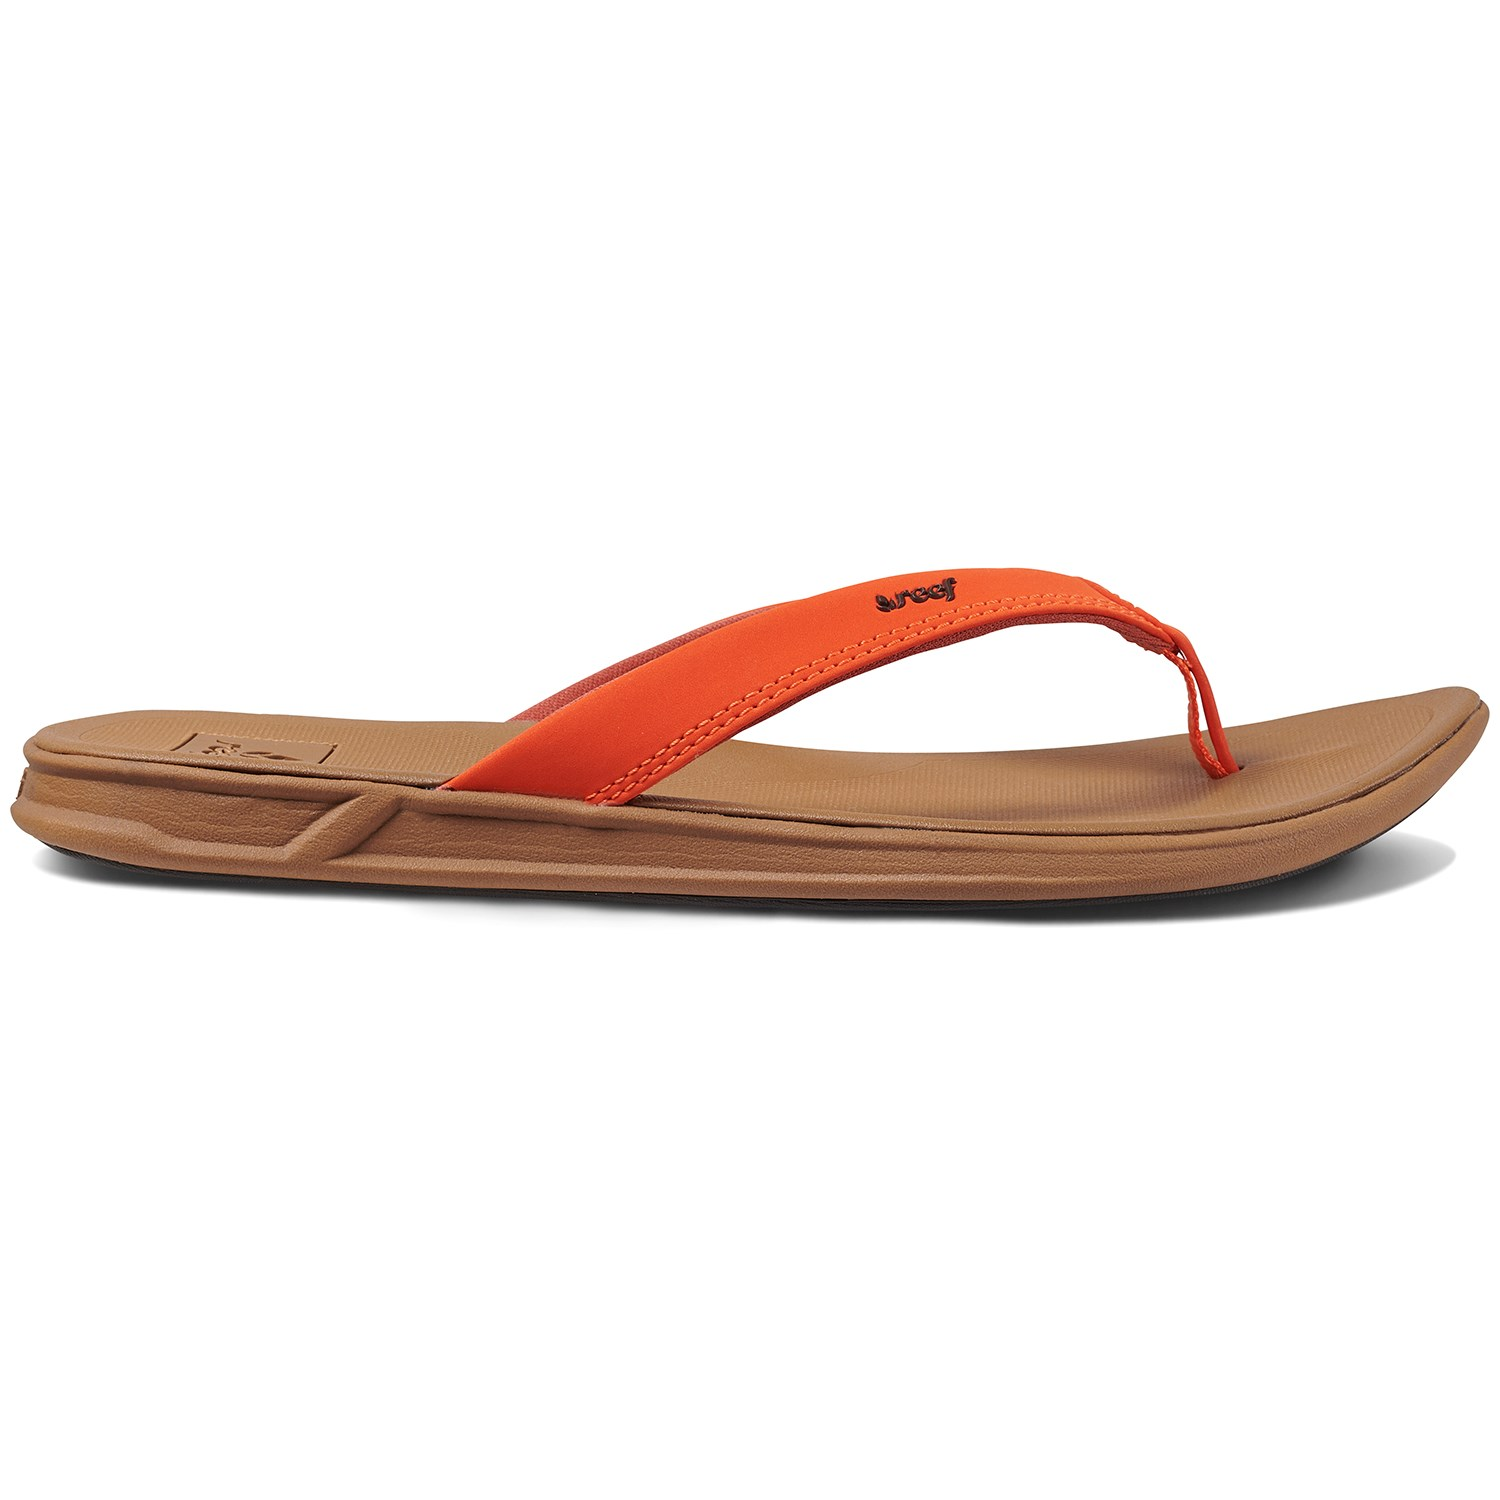 ac88545cbecc Reef Rover Catch Sandals - Women s